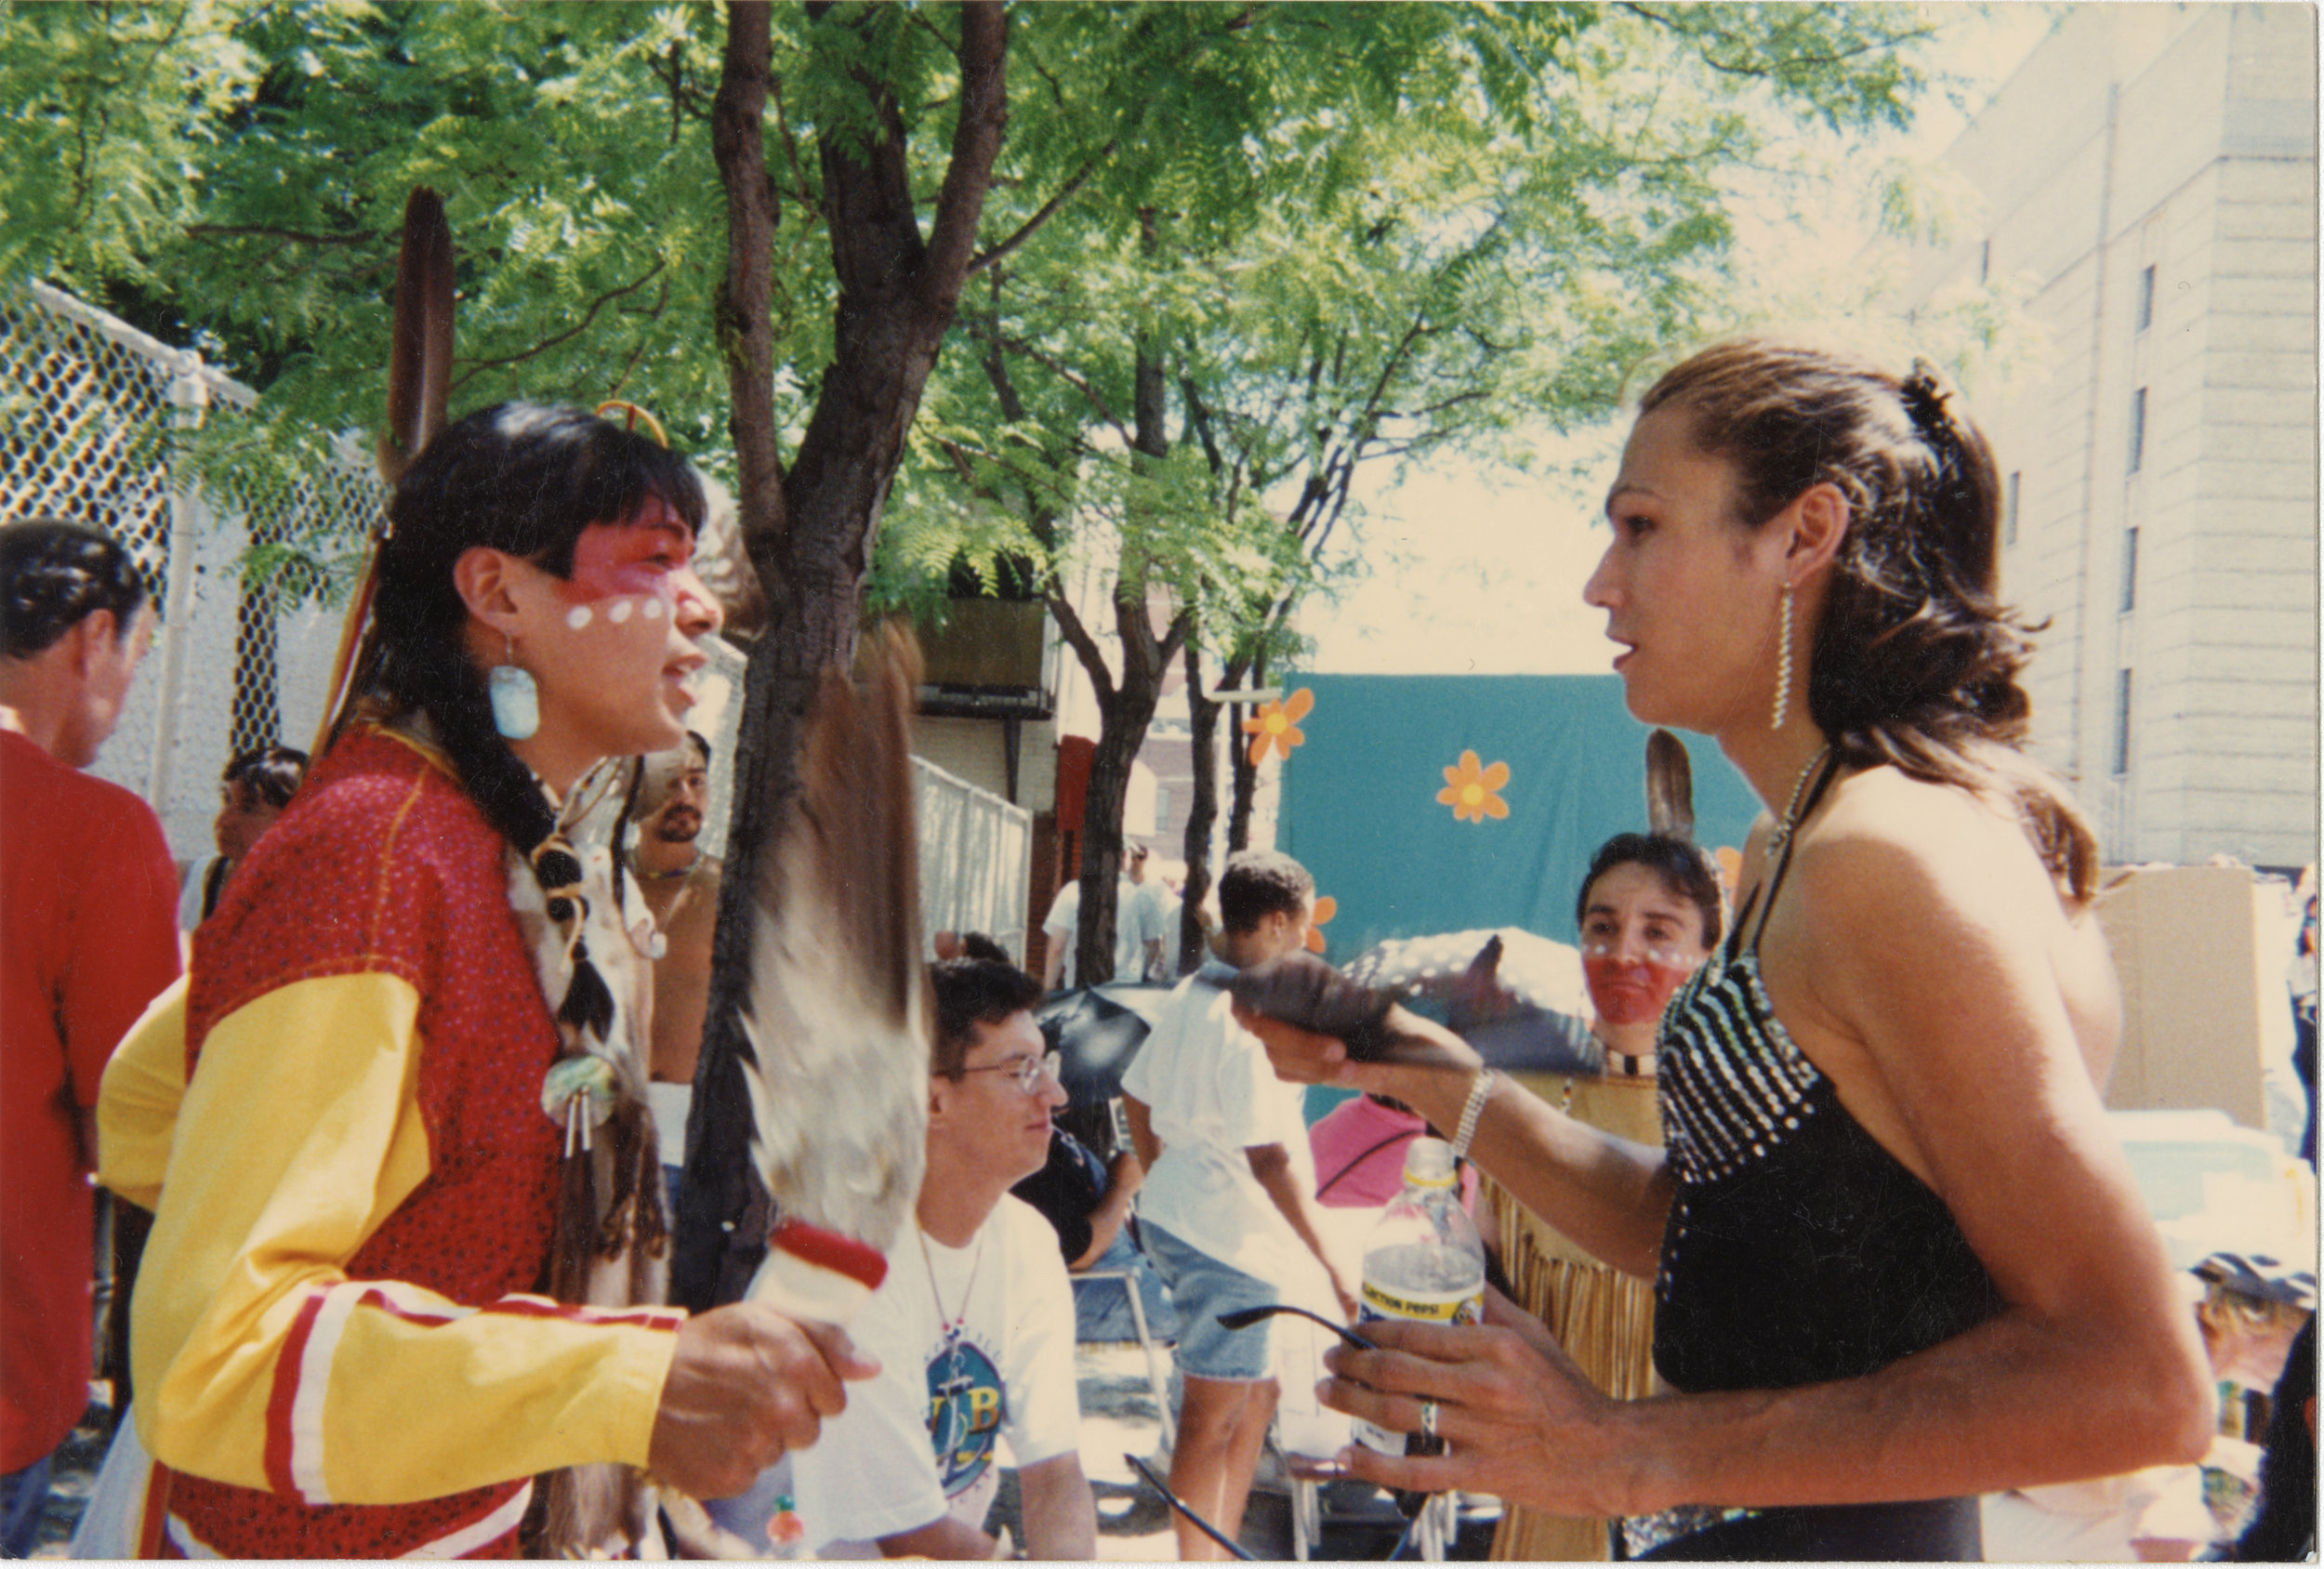 Alley Yapput, Stacy Status, and June Thunderchild at Pride in Toronto, 1992. Courtesy of the University of Winnipeg Archives, Two-Spirited Collection.